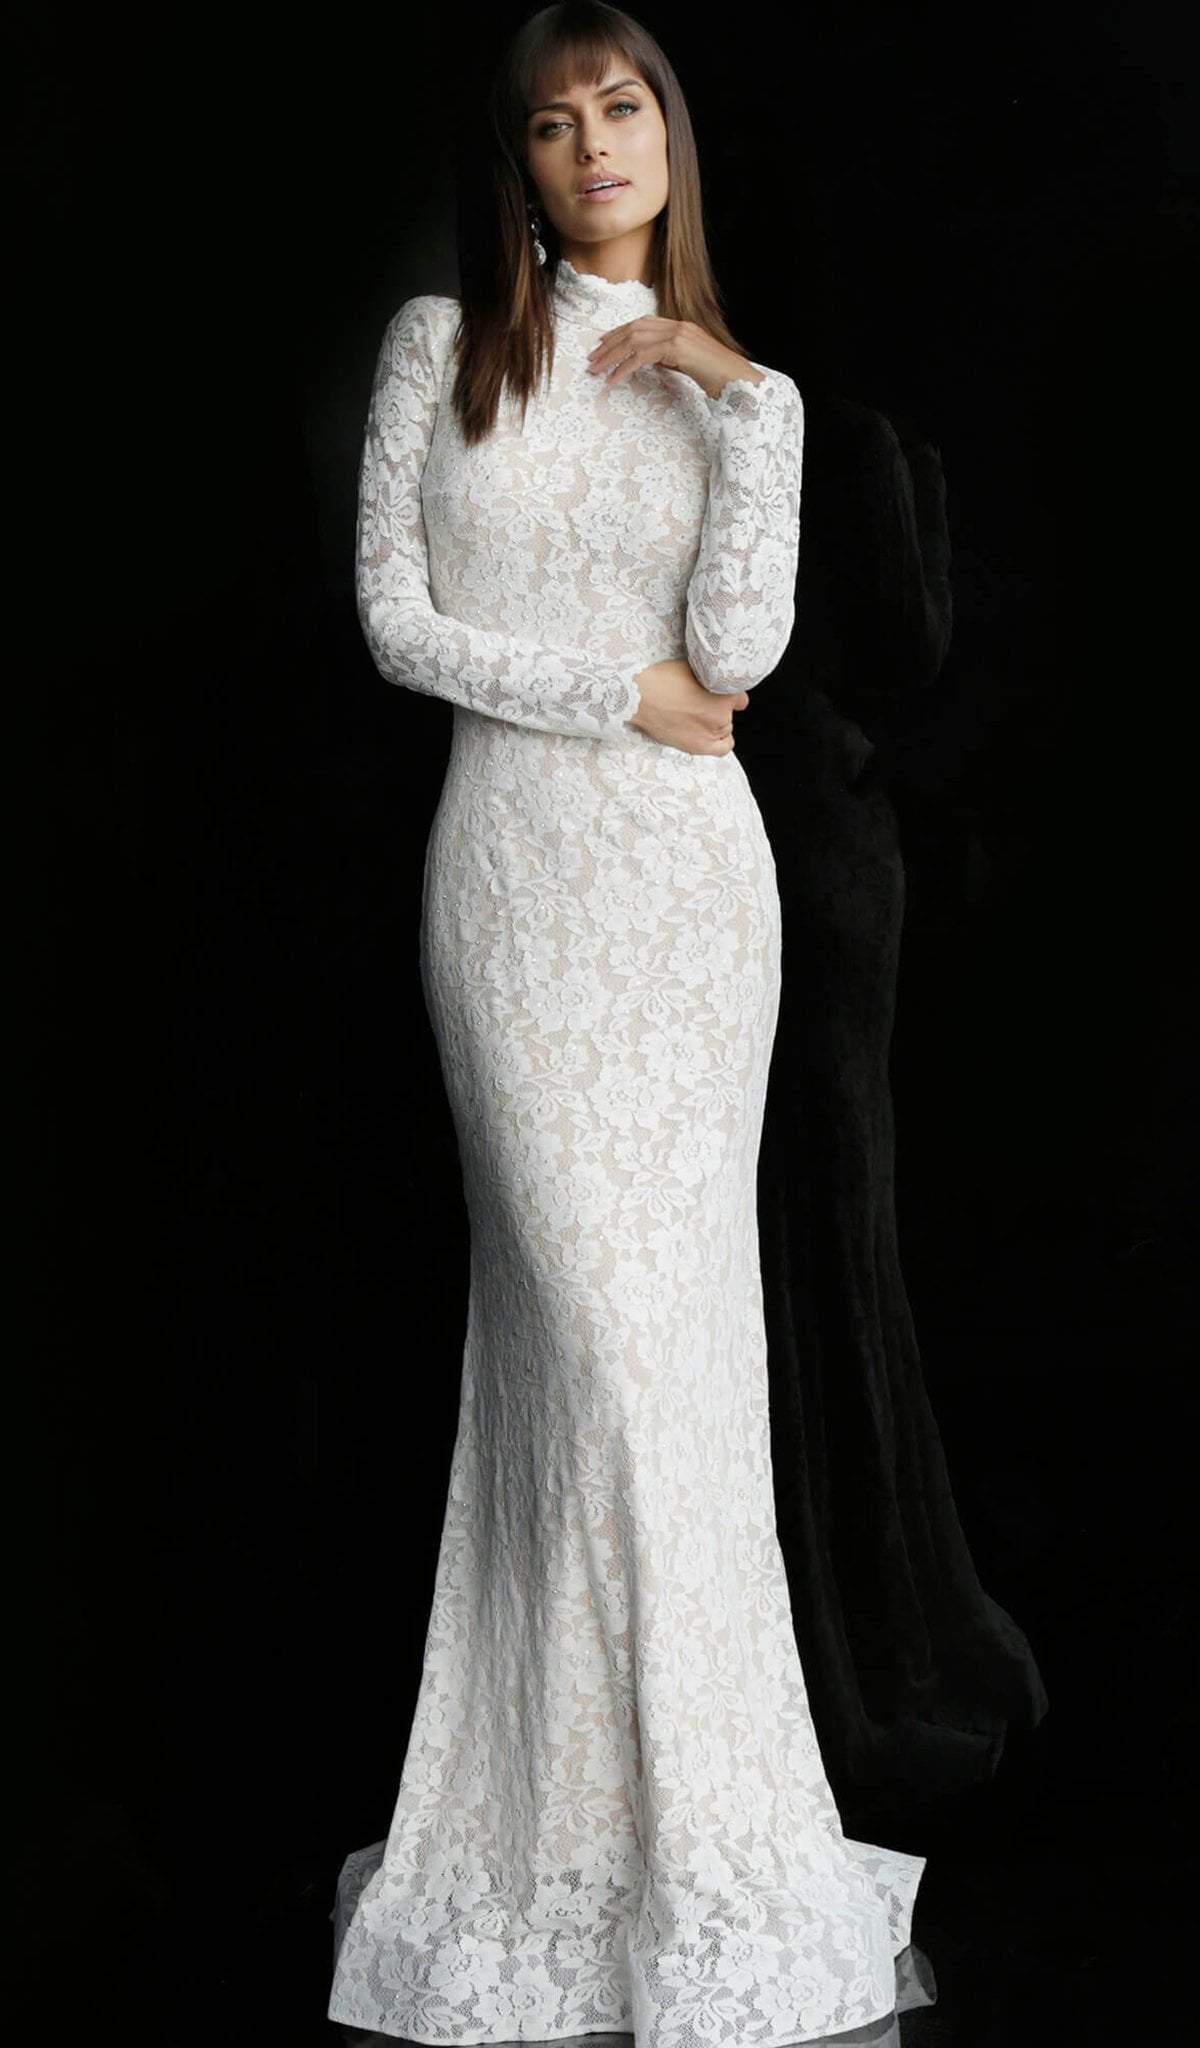 Jovani - 63209 Lace Long Sleeve High Neck Trumpet Dress In White